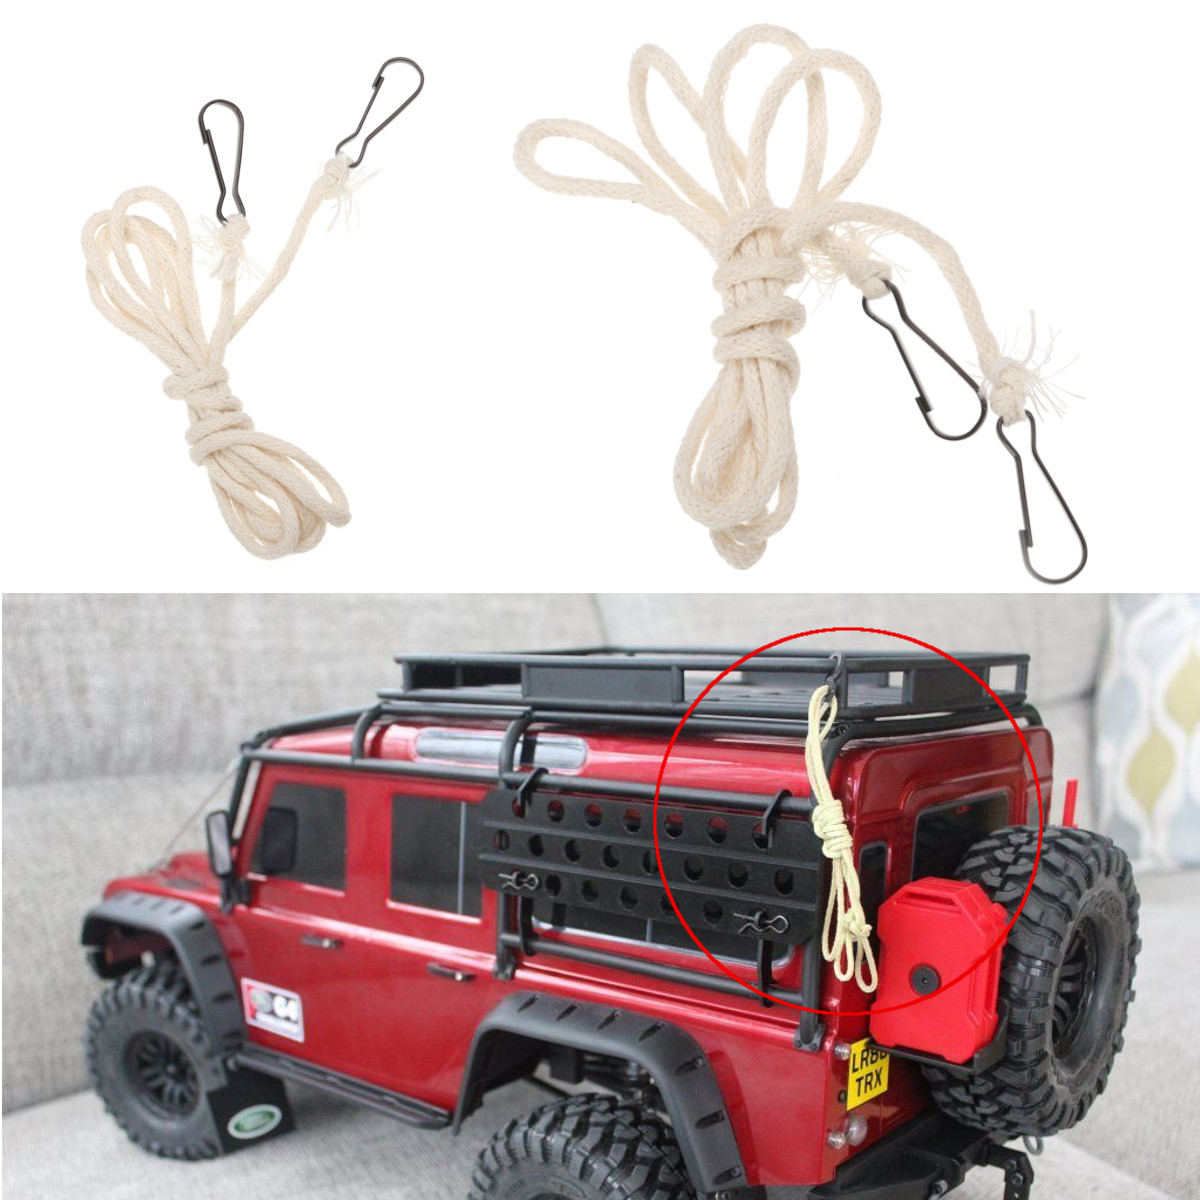 1PC Limb Hemp Towing Rope With Hook For &LandroverD110 Scale Crawler Rc Car Parts Model Car Accessories String Decoration